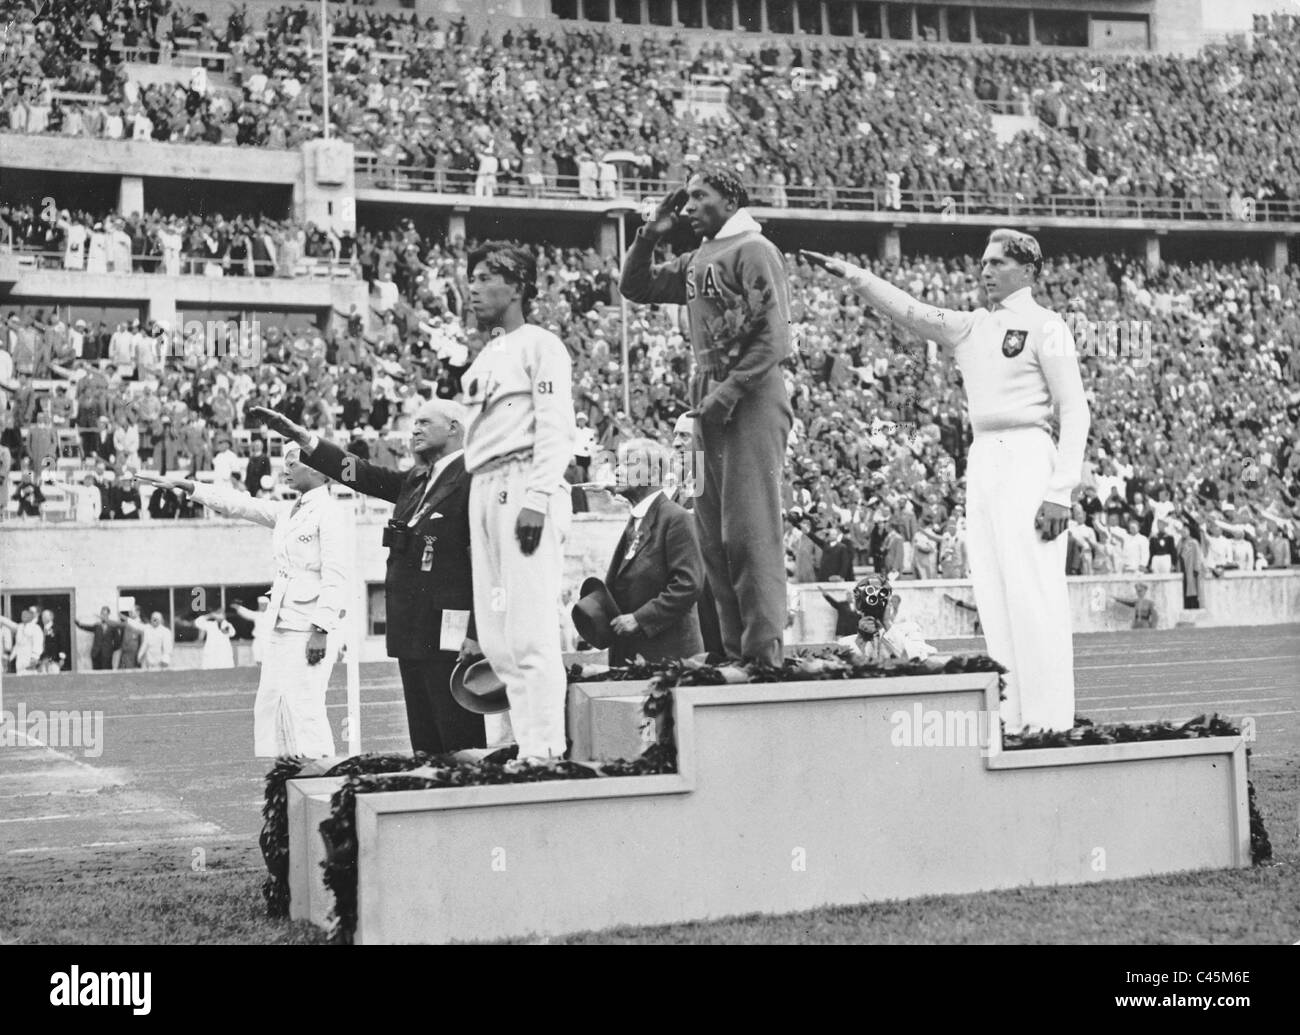 Long Jump Black and White Stock Photos & Images - Alamy